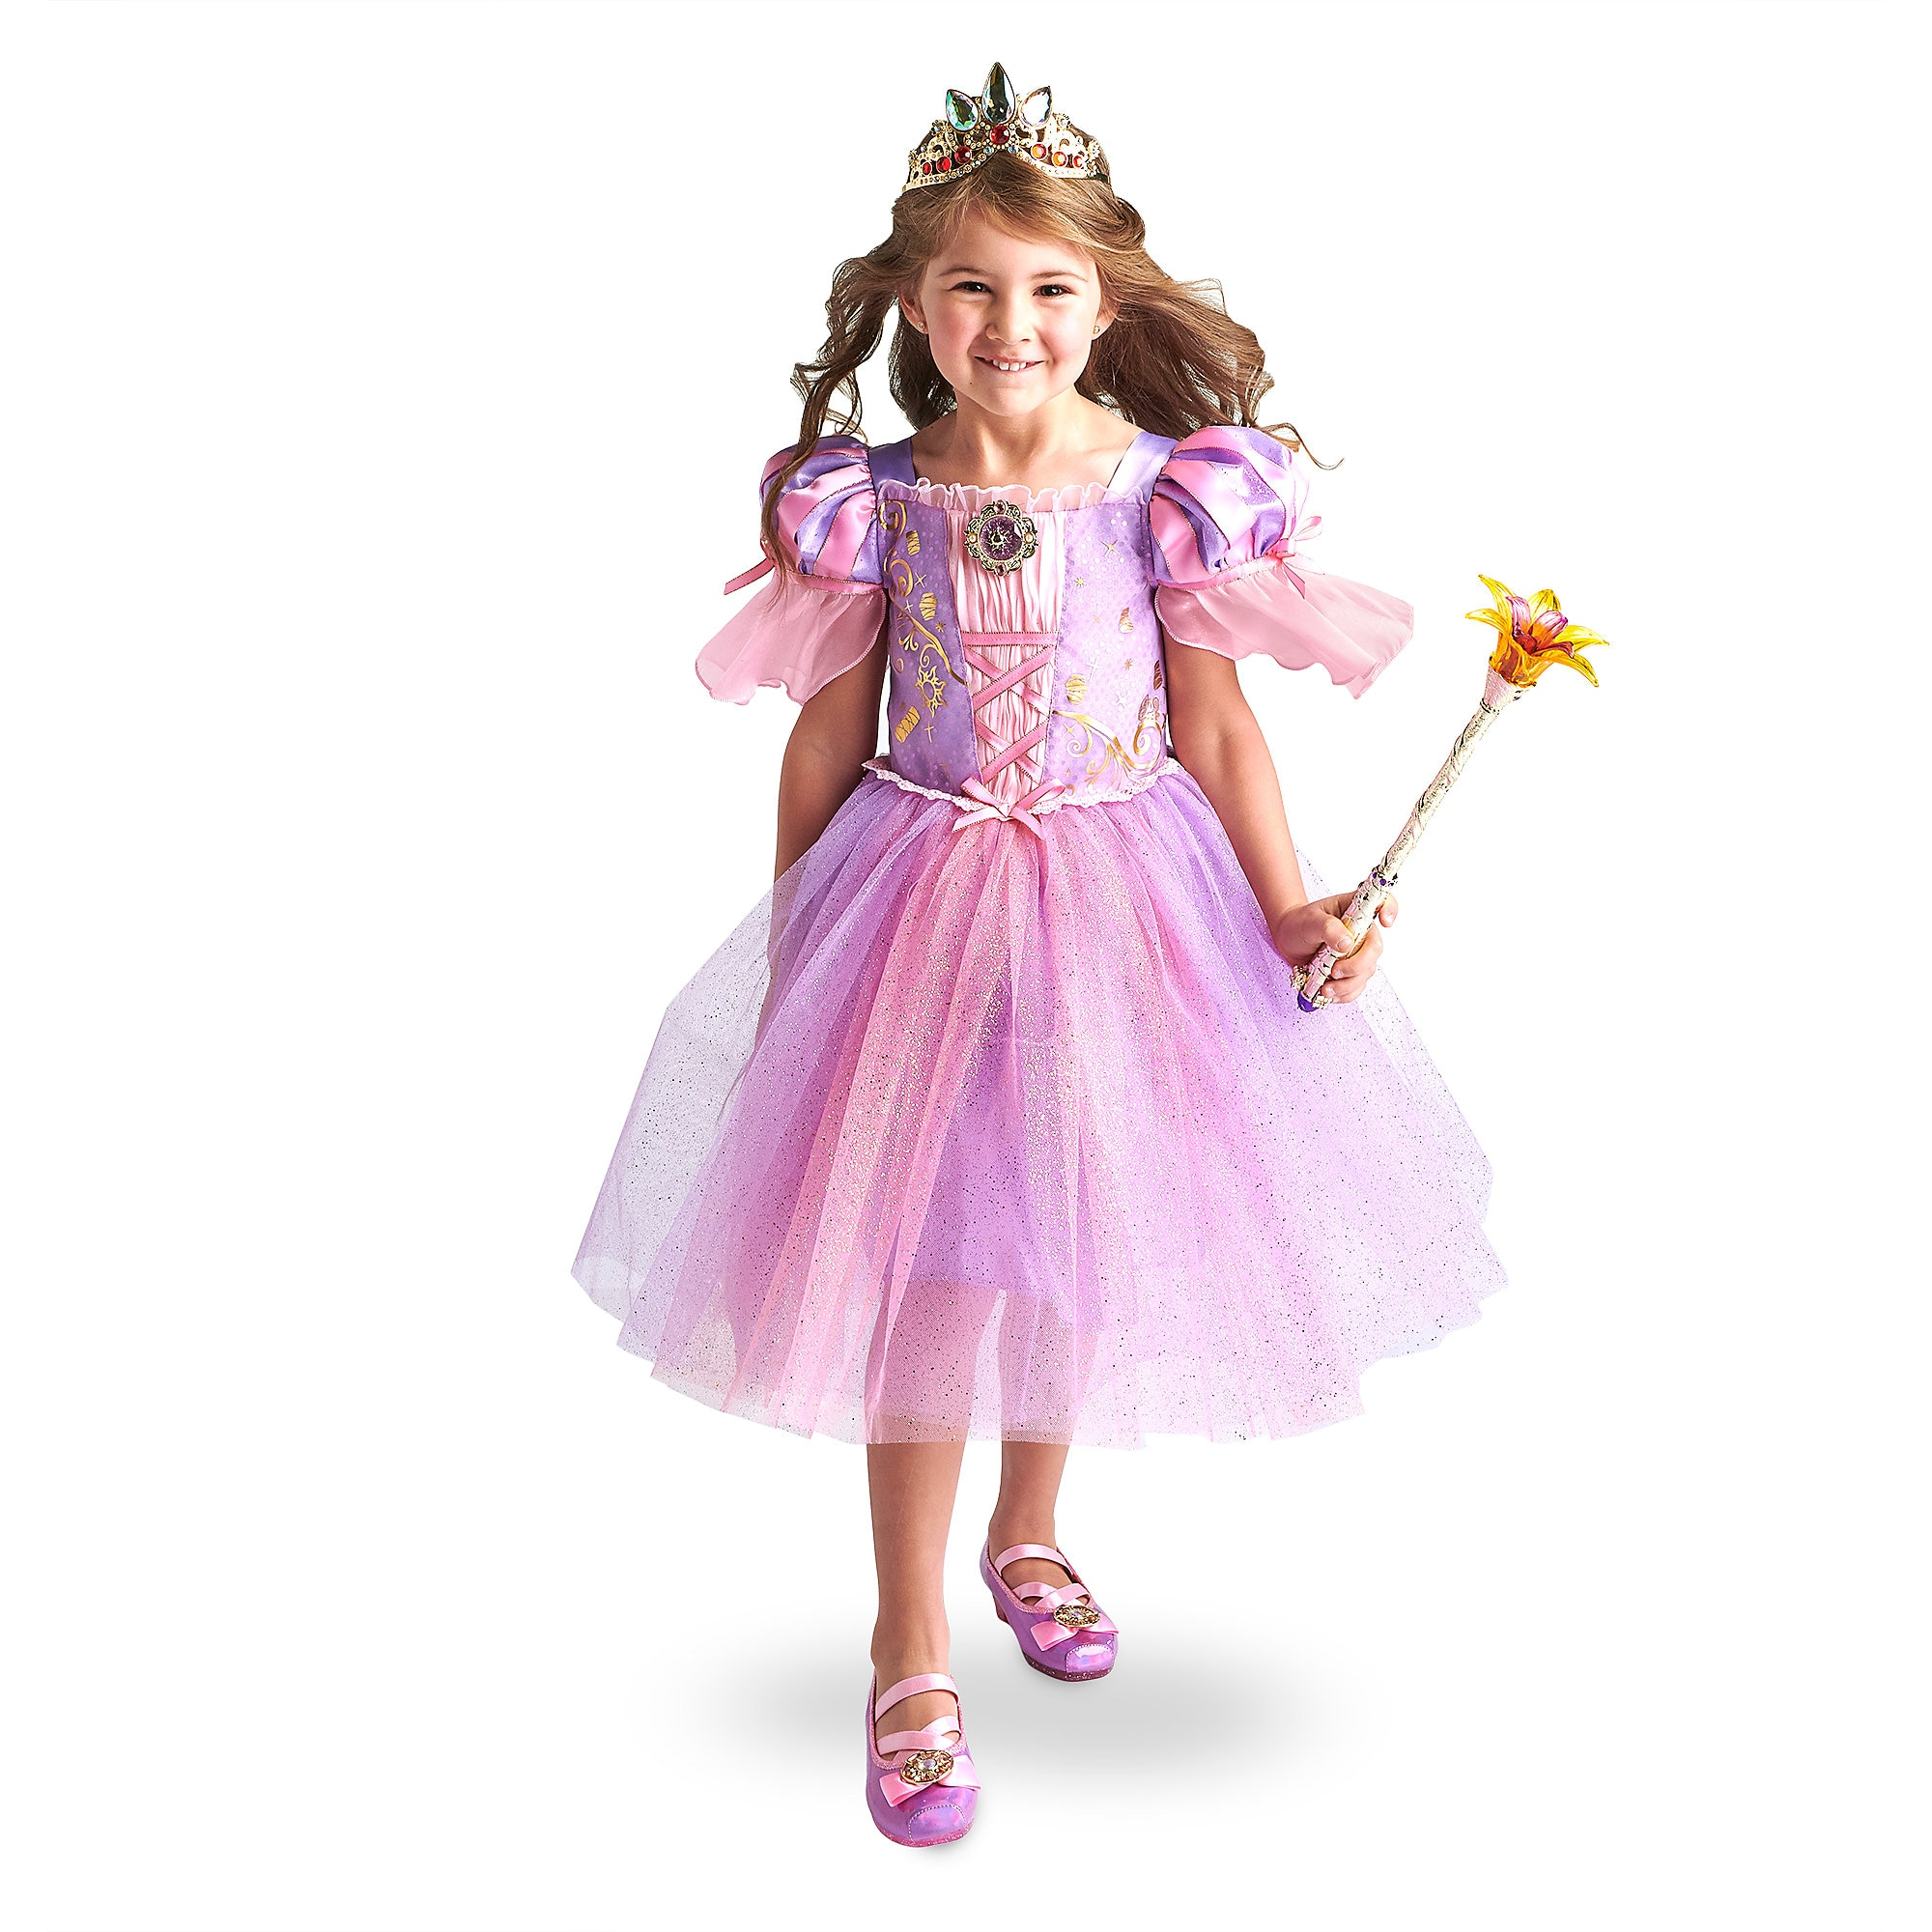 Rapunzel Costume Collection for Kids - Tangled The Series